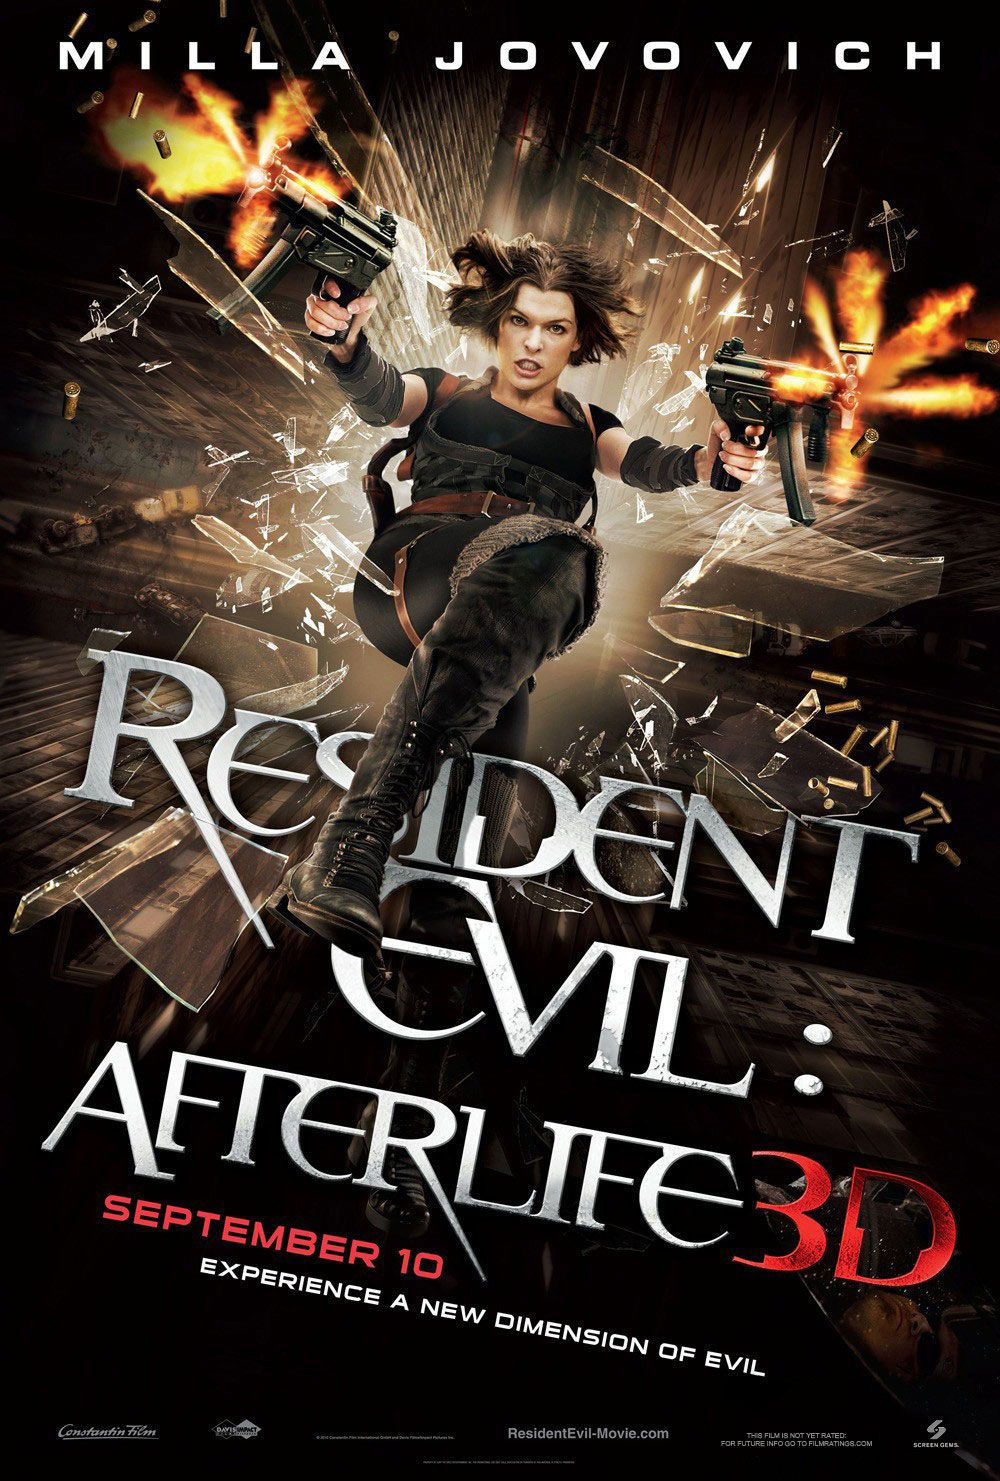 New Poster for RESIDENT EVIL: AFTERLIFE 3D Starring Milla ...